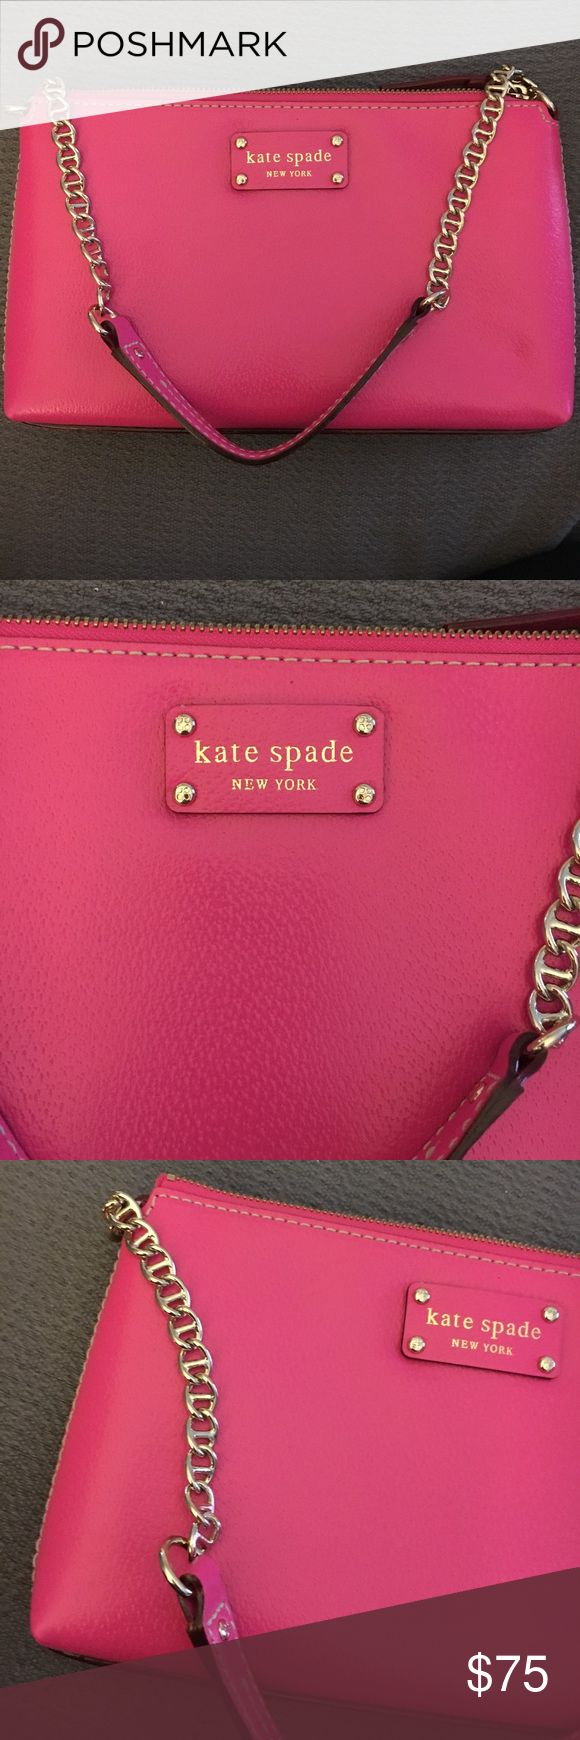 Bright pink Kate Spade clutch bag! This is a bright pink kate Spade small clutch purse that is in perfect condition. Although the tags are not on it, I have never used the bag so it is in brand NEW condition. The exterior is bright pink with gold hardware and the interior is purple and yellow polka dots. The bag is easily big enough to fit a cell phone, wallet, camera, makeup or whatever you choose! Kate Spade logo is shown in picture confirming authenticity! kate spade Bags Mini Bags